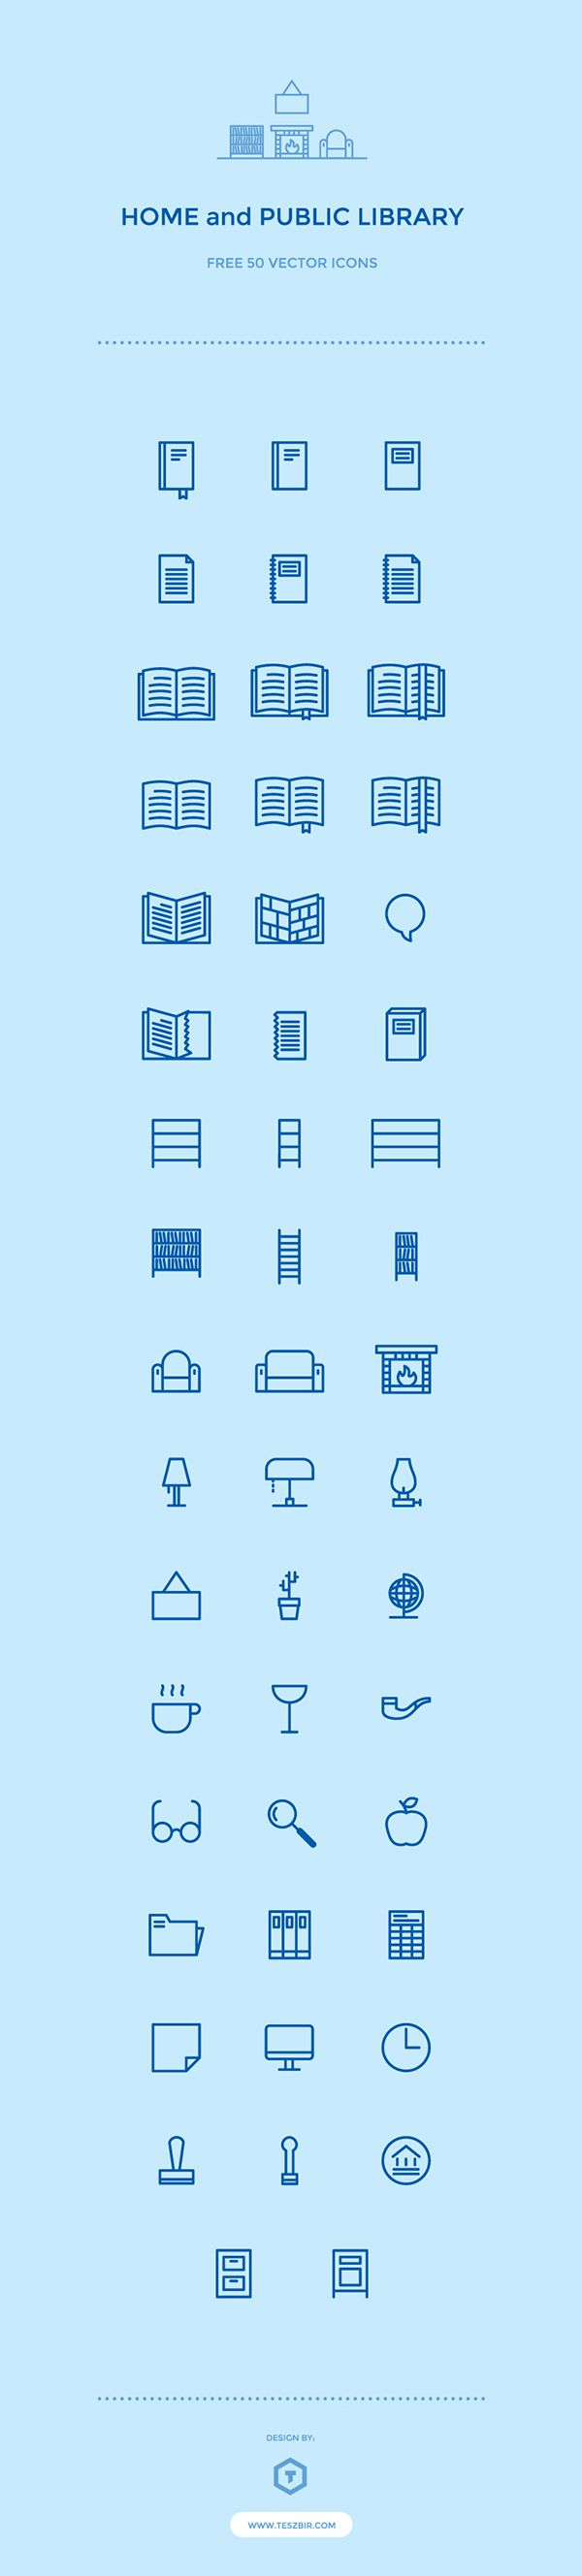 50 Free Library Icons on Behance